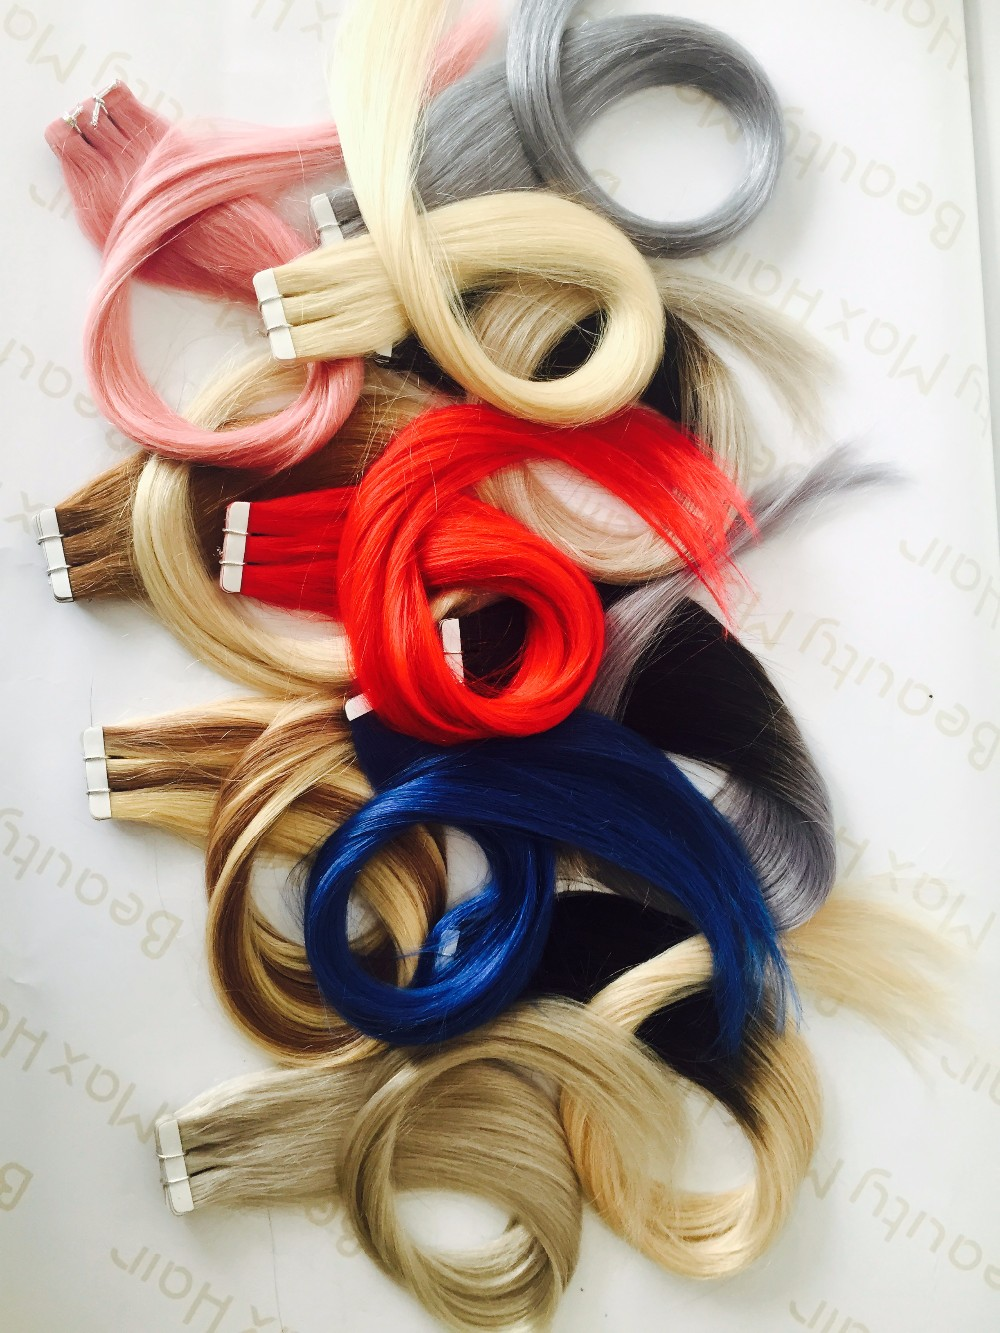 Hot Selling!!! Full Cuticle One Donor 100% Virgin Brazilian Hair Wholesale Private Label 7A Tape Hair